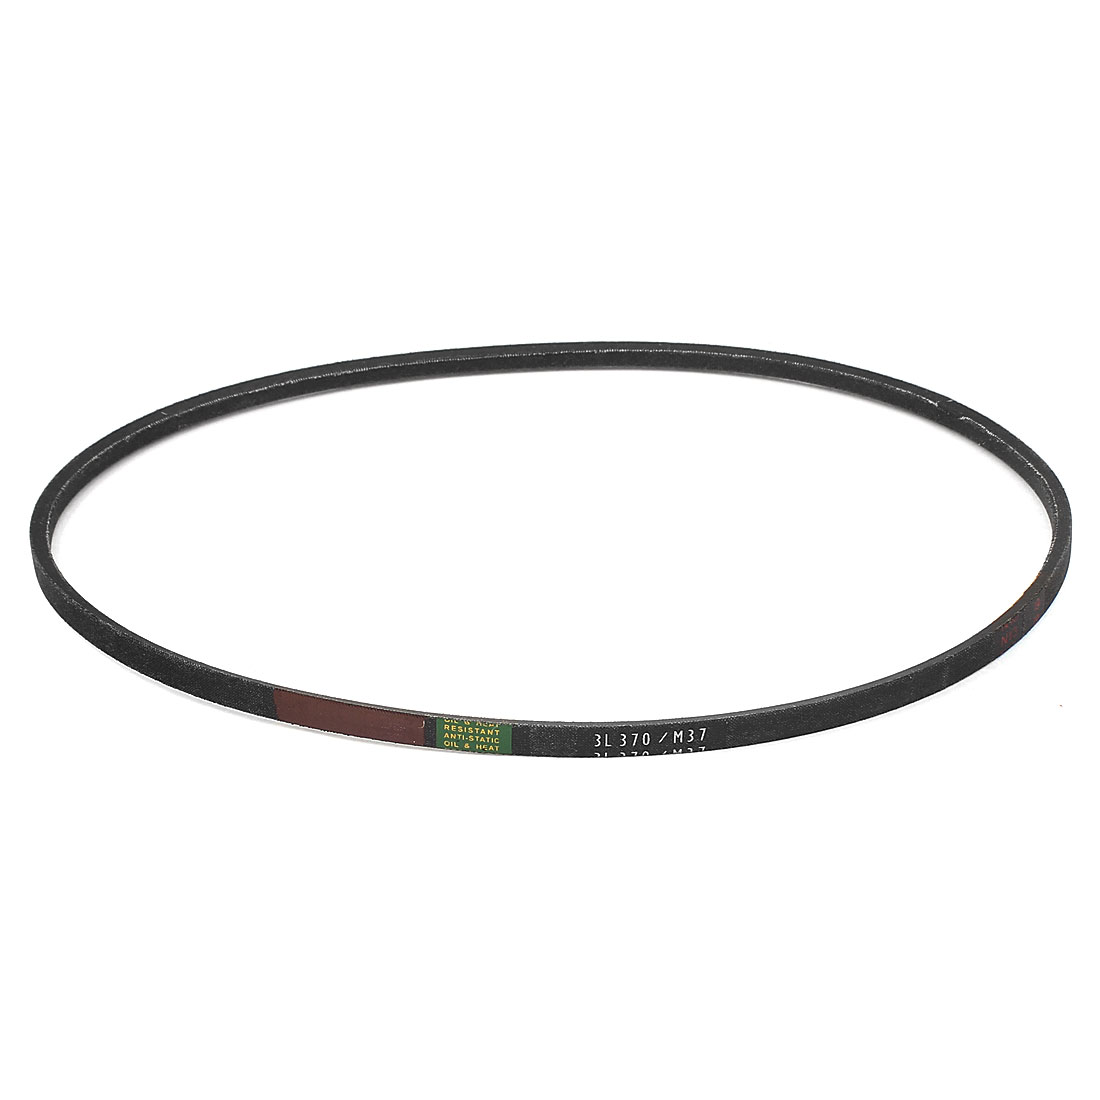 Industrial Transmission Lawn Mower Machine Replacement Rubber M37 V Belt